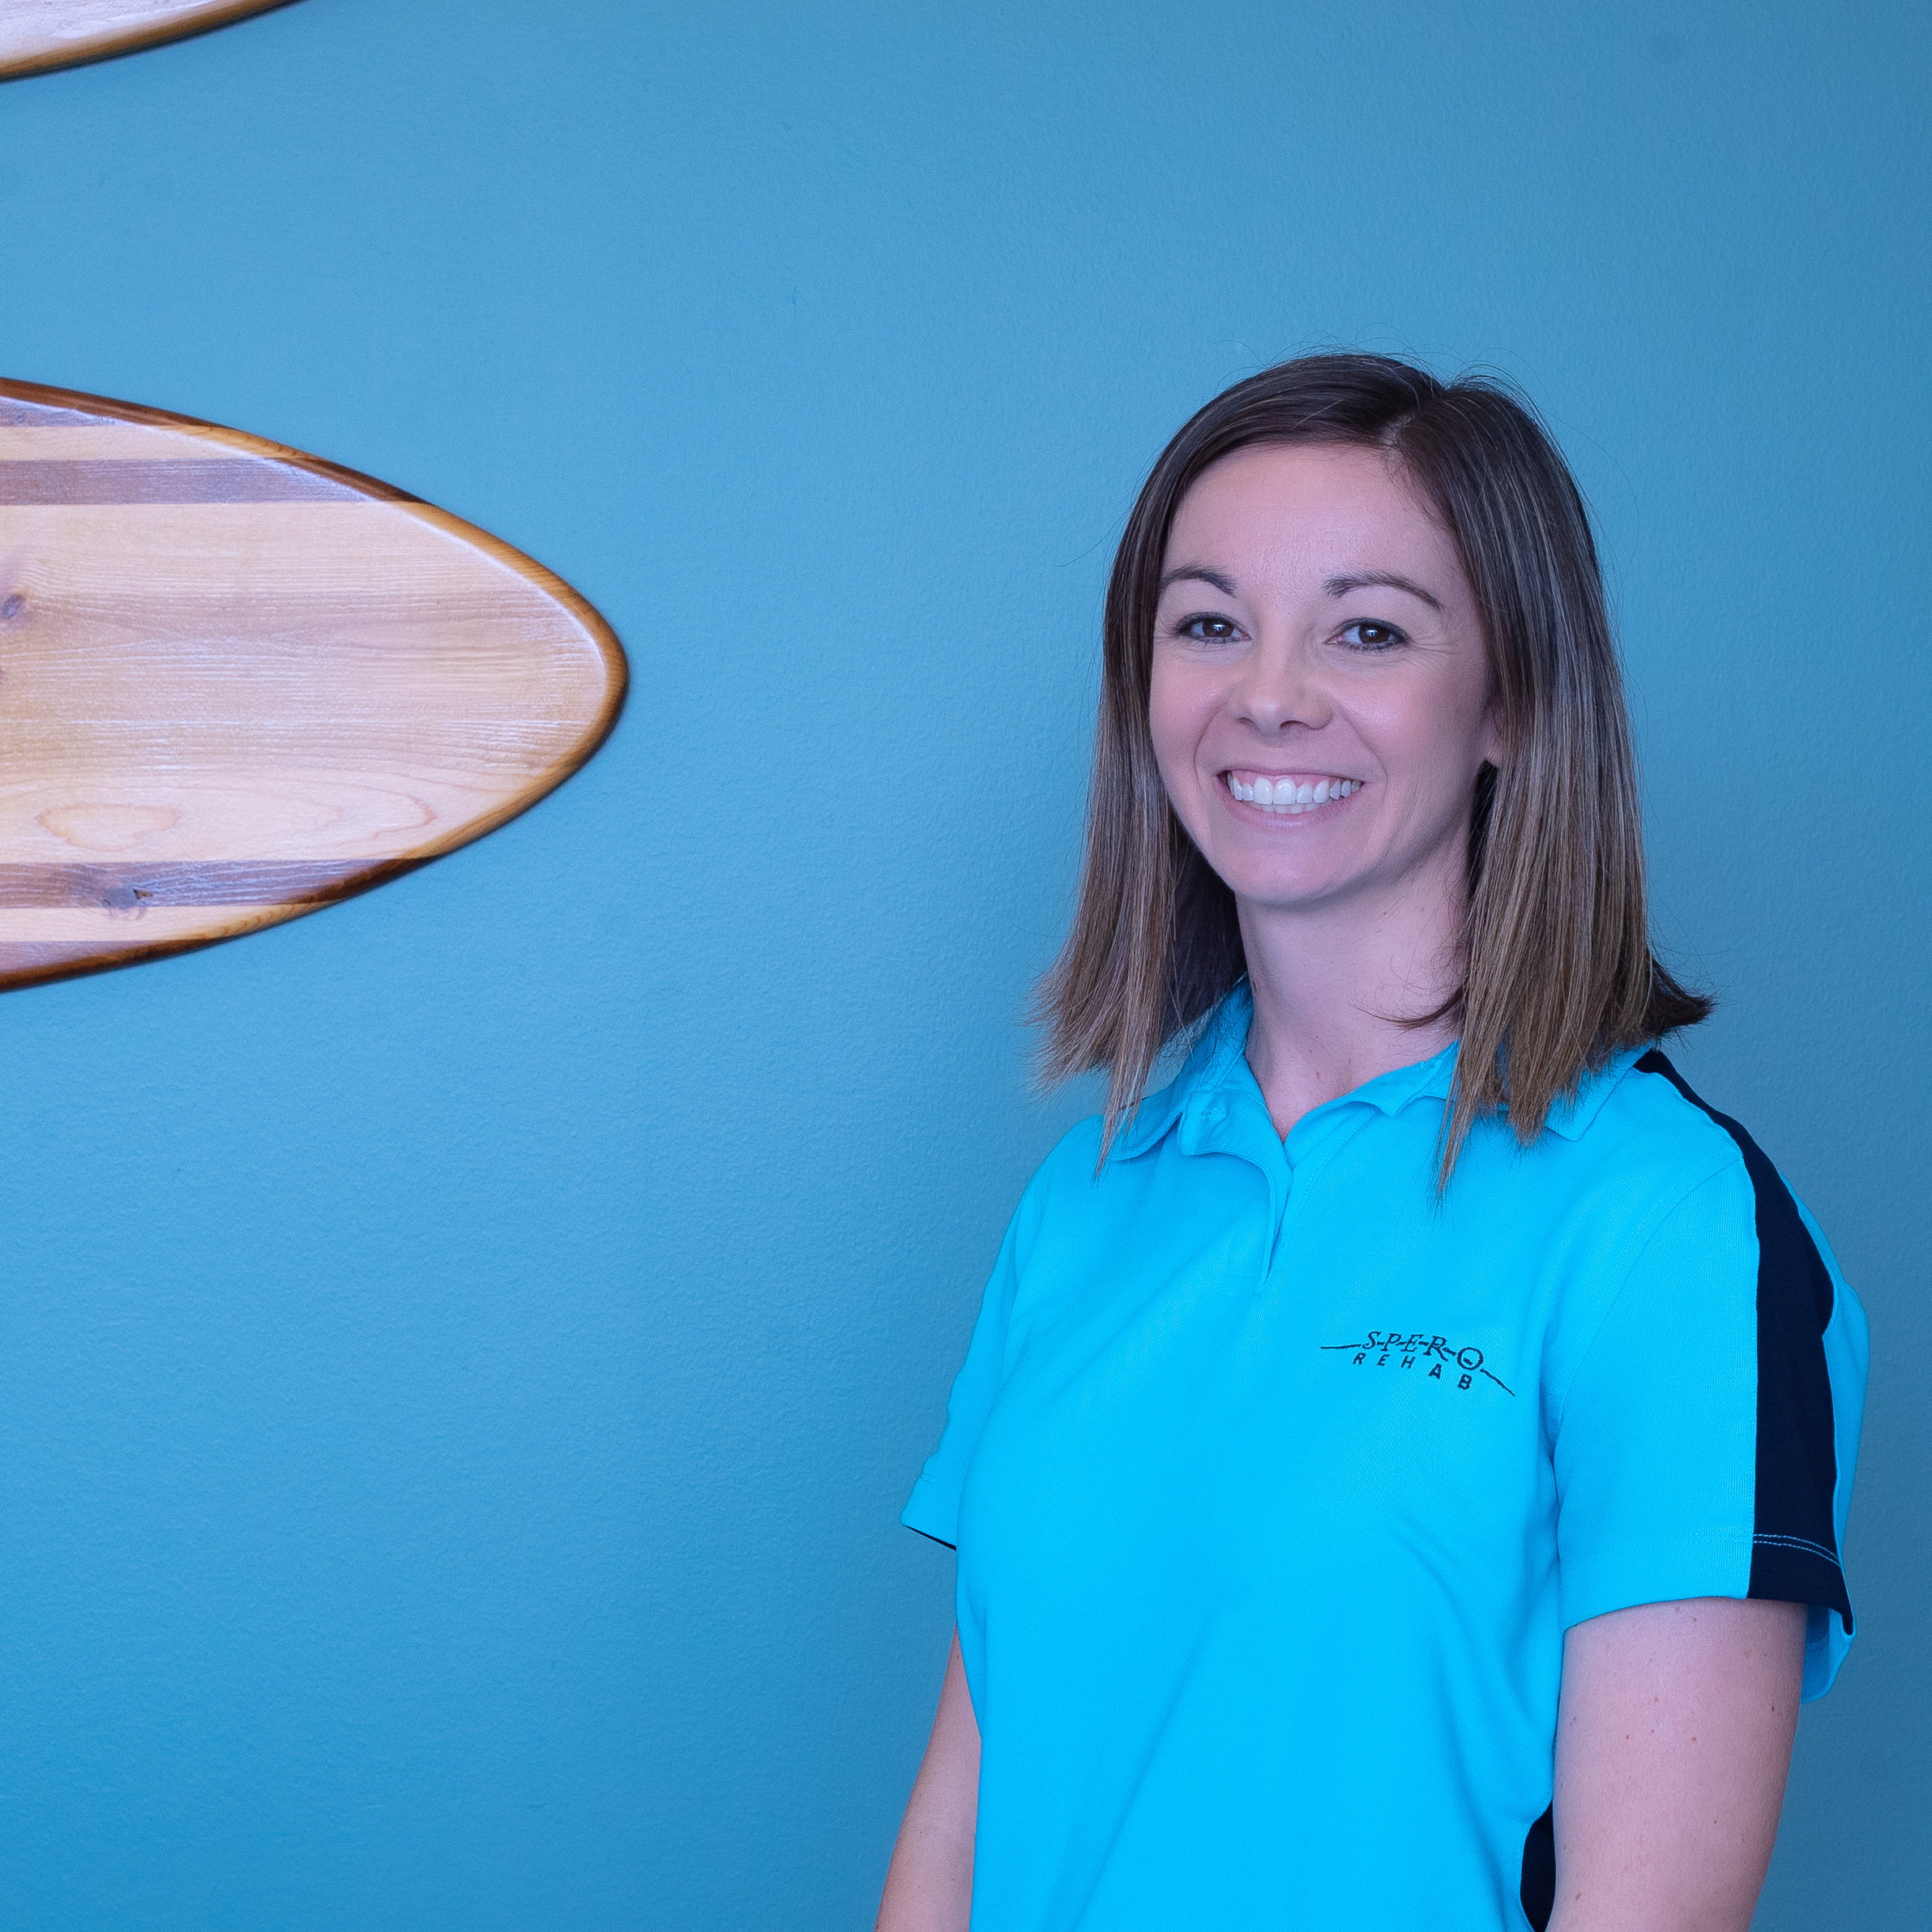 Adrienne Chaddick is a licensed physical therapist who received her BS in Exercise Science from Texas A&M-Corpus Christi in 2005 and Doctorate of Physical Therapy from Texas Tech Health Science Center in 2009.